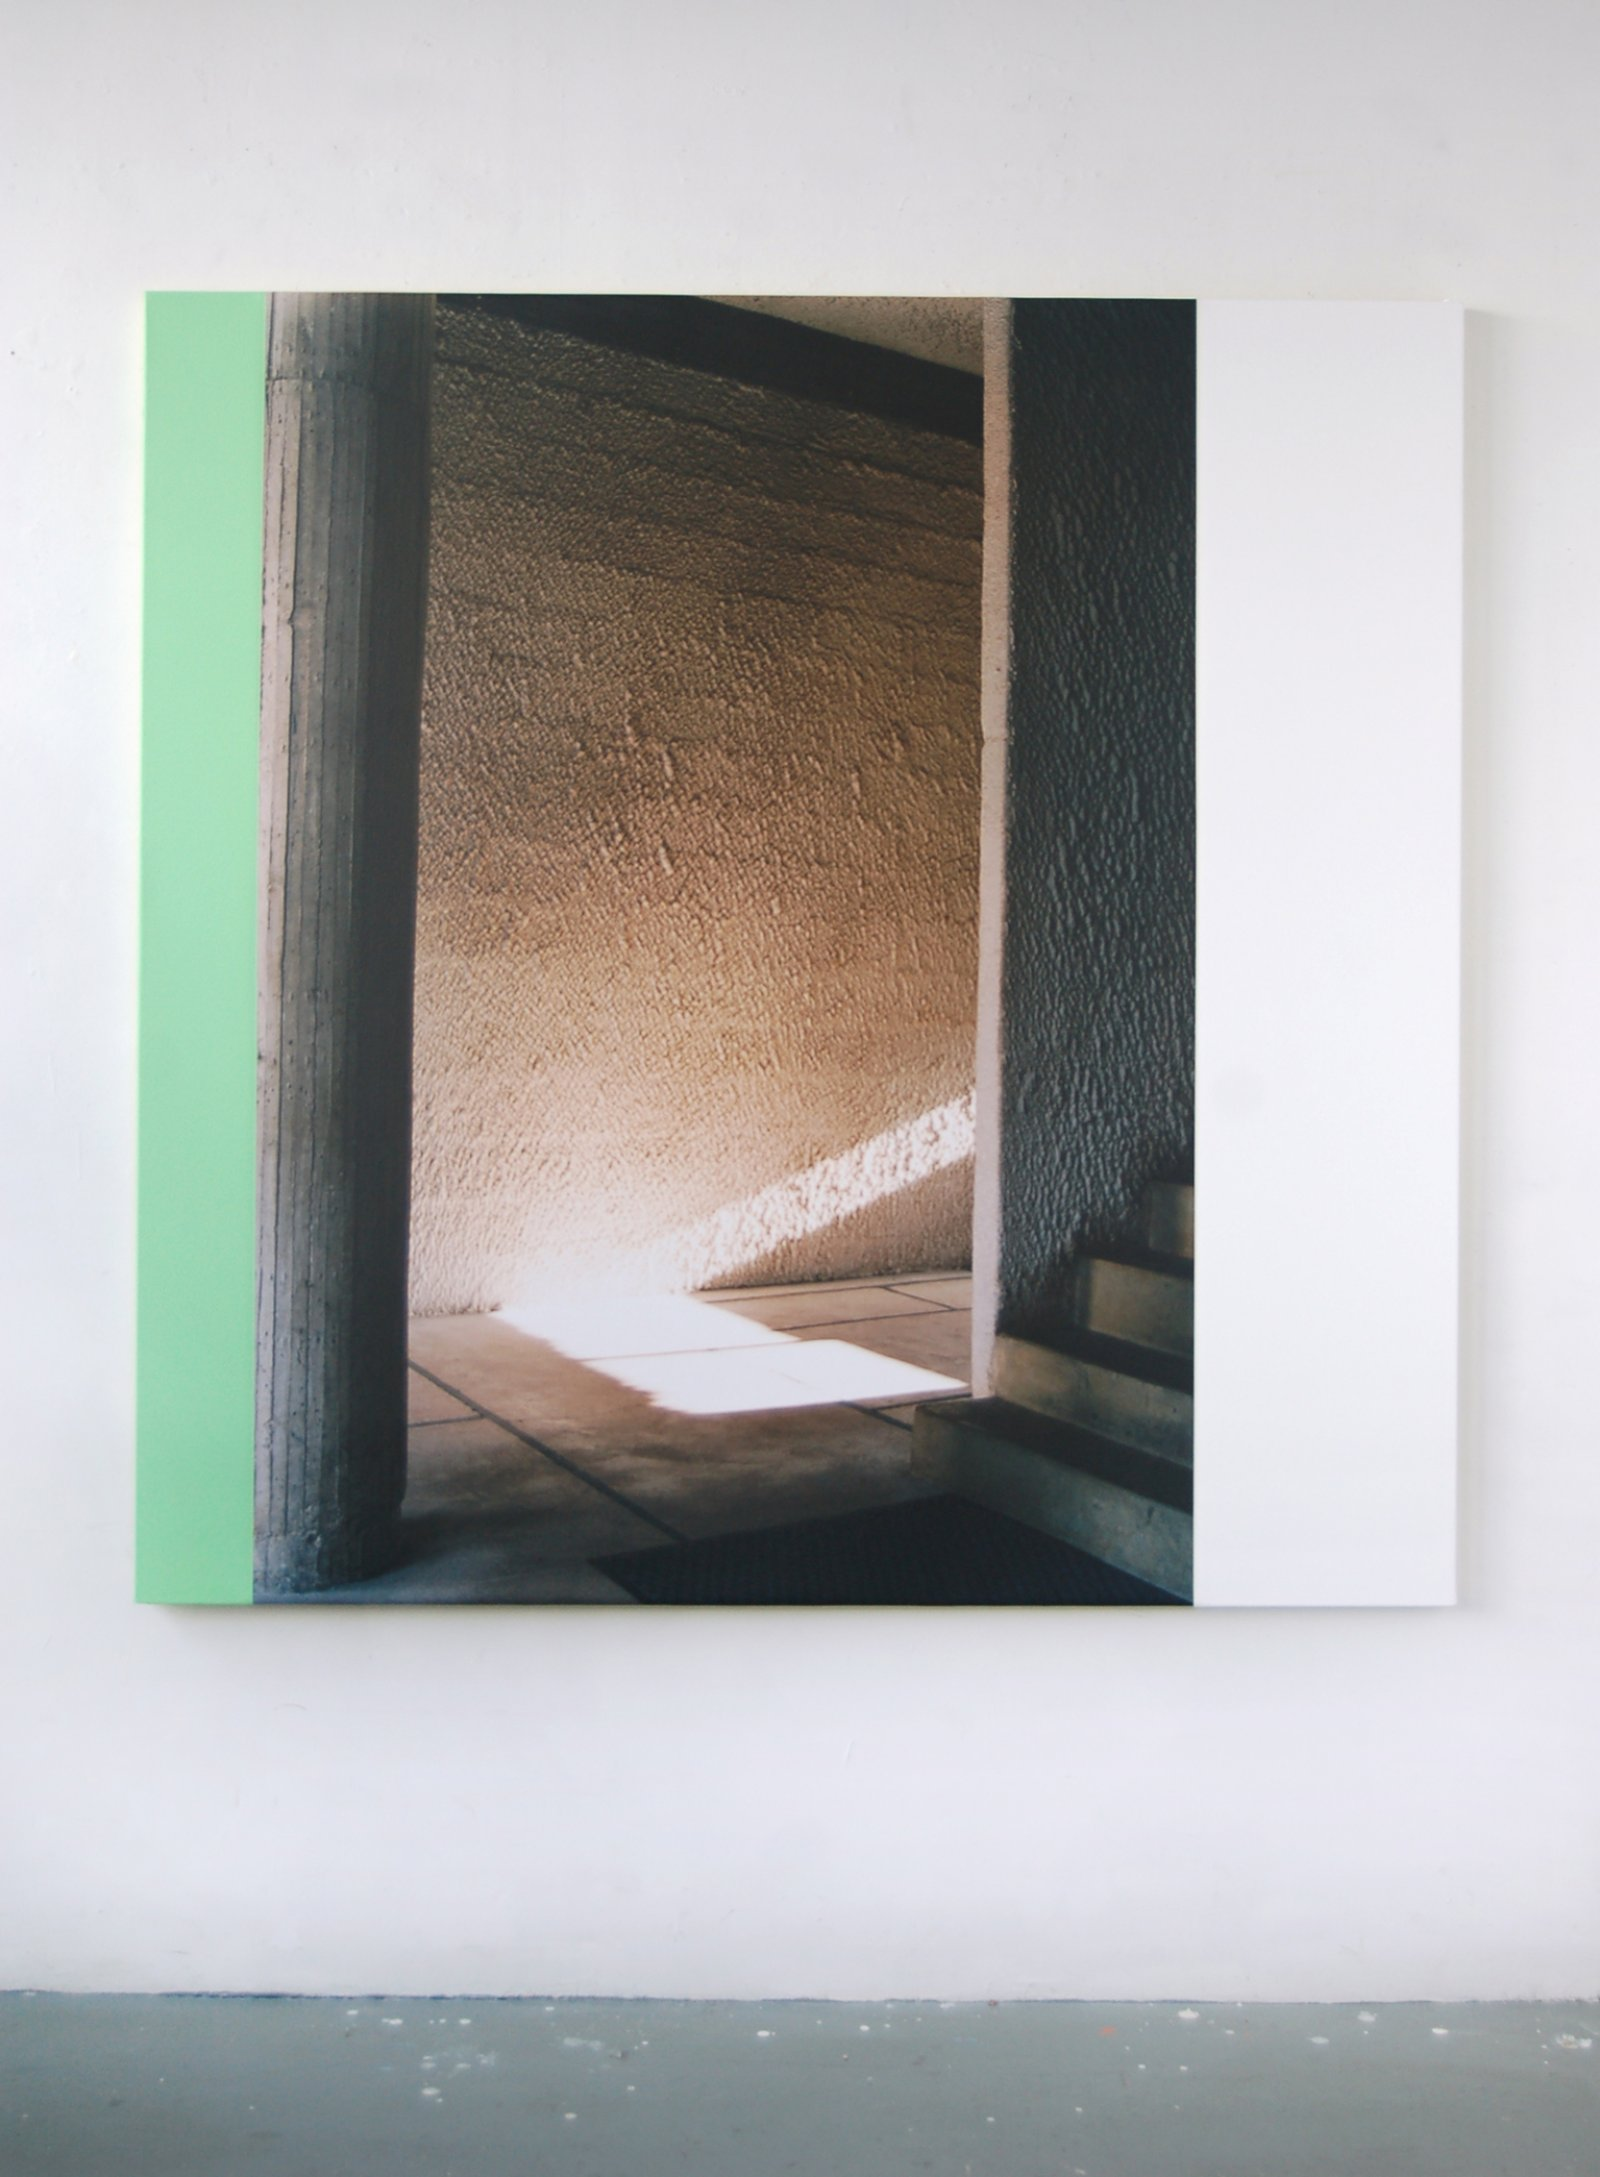 Ian Wallace,La Tourette (A Beam of Light), 2006, photolaminate and acrylic on canvas, 60 x 60 in. (152 x 152 cm)